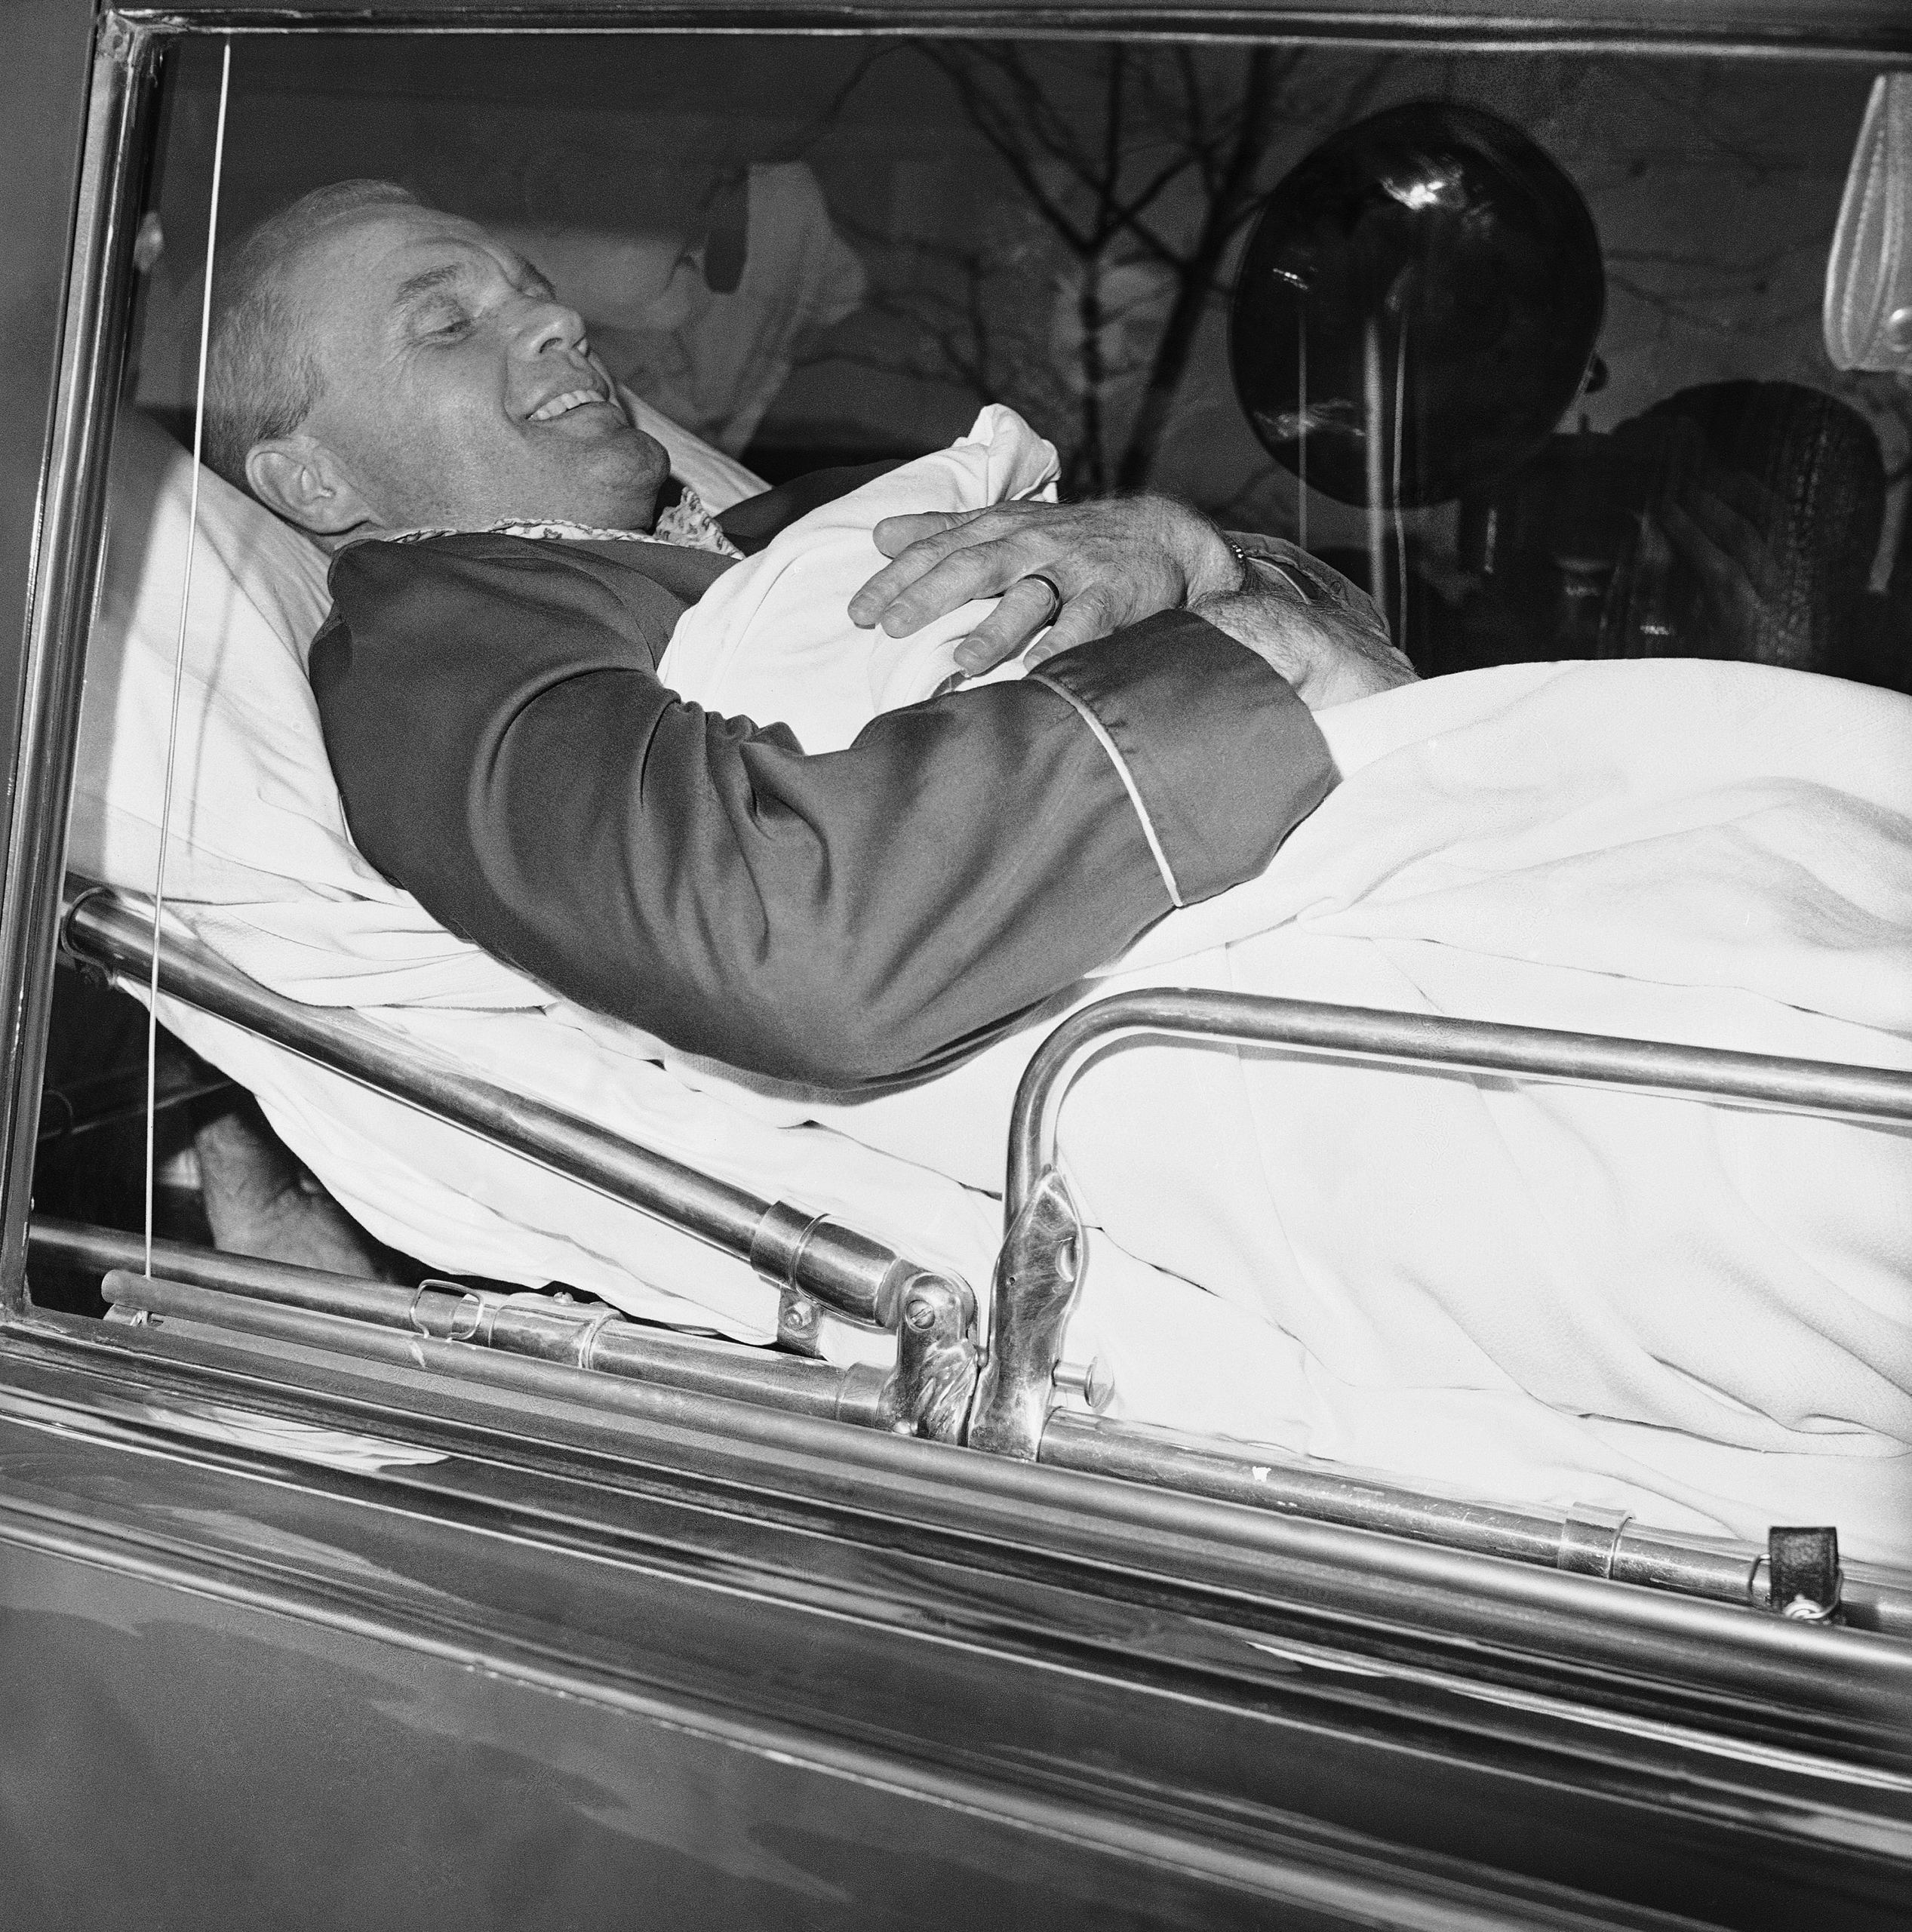 <b>A Medical Mission</b> In an ambulance in Ohio, Glenn prepares to be flown to Lackland Air Force Base in Texas for further treatment of his inner-ear injury in 1964.